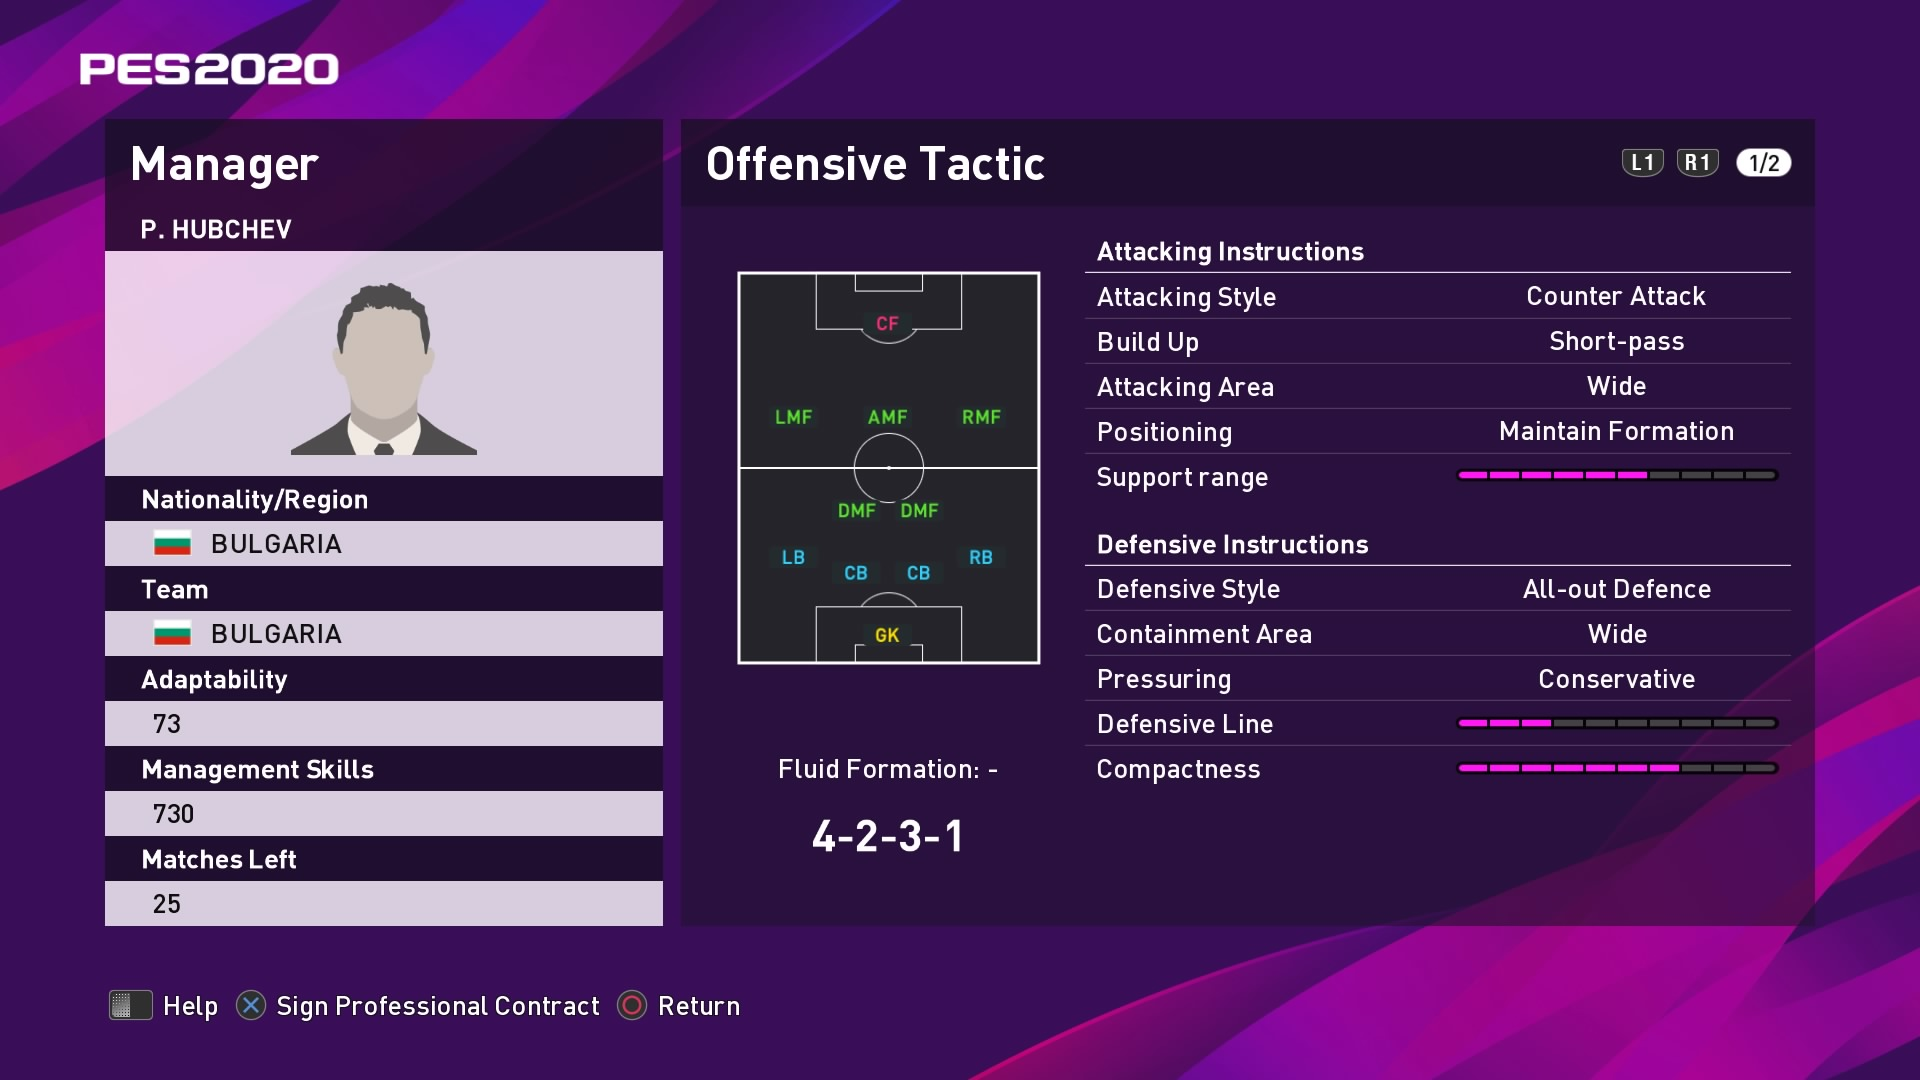 P. Hubchev (Petar Hubchev) Offensive Tactic in PES 2020 myClub